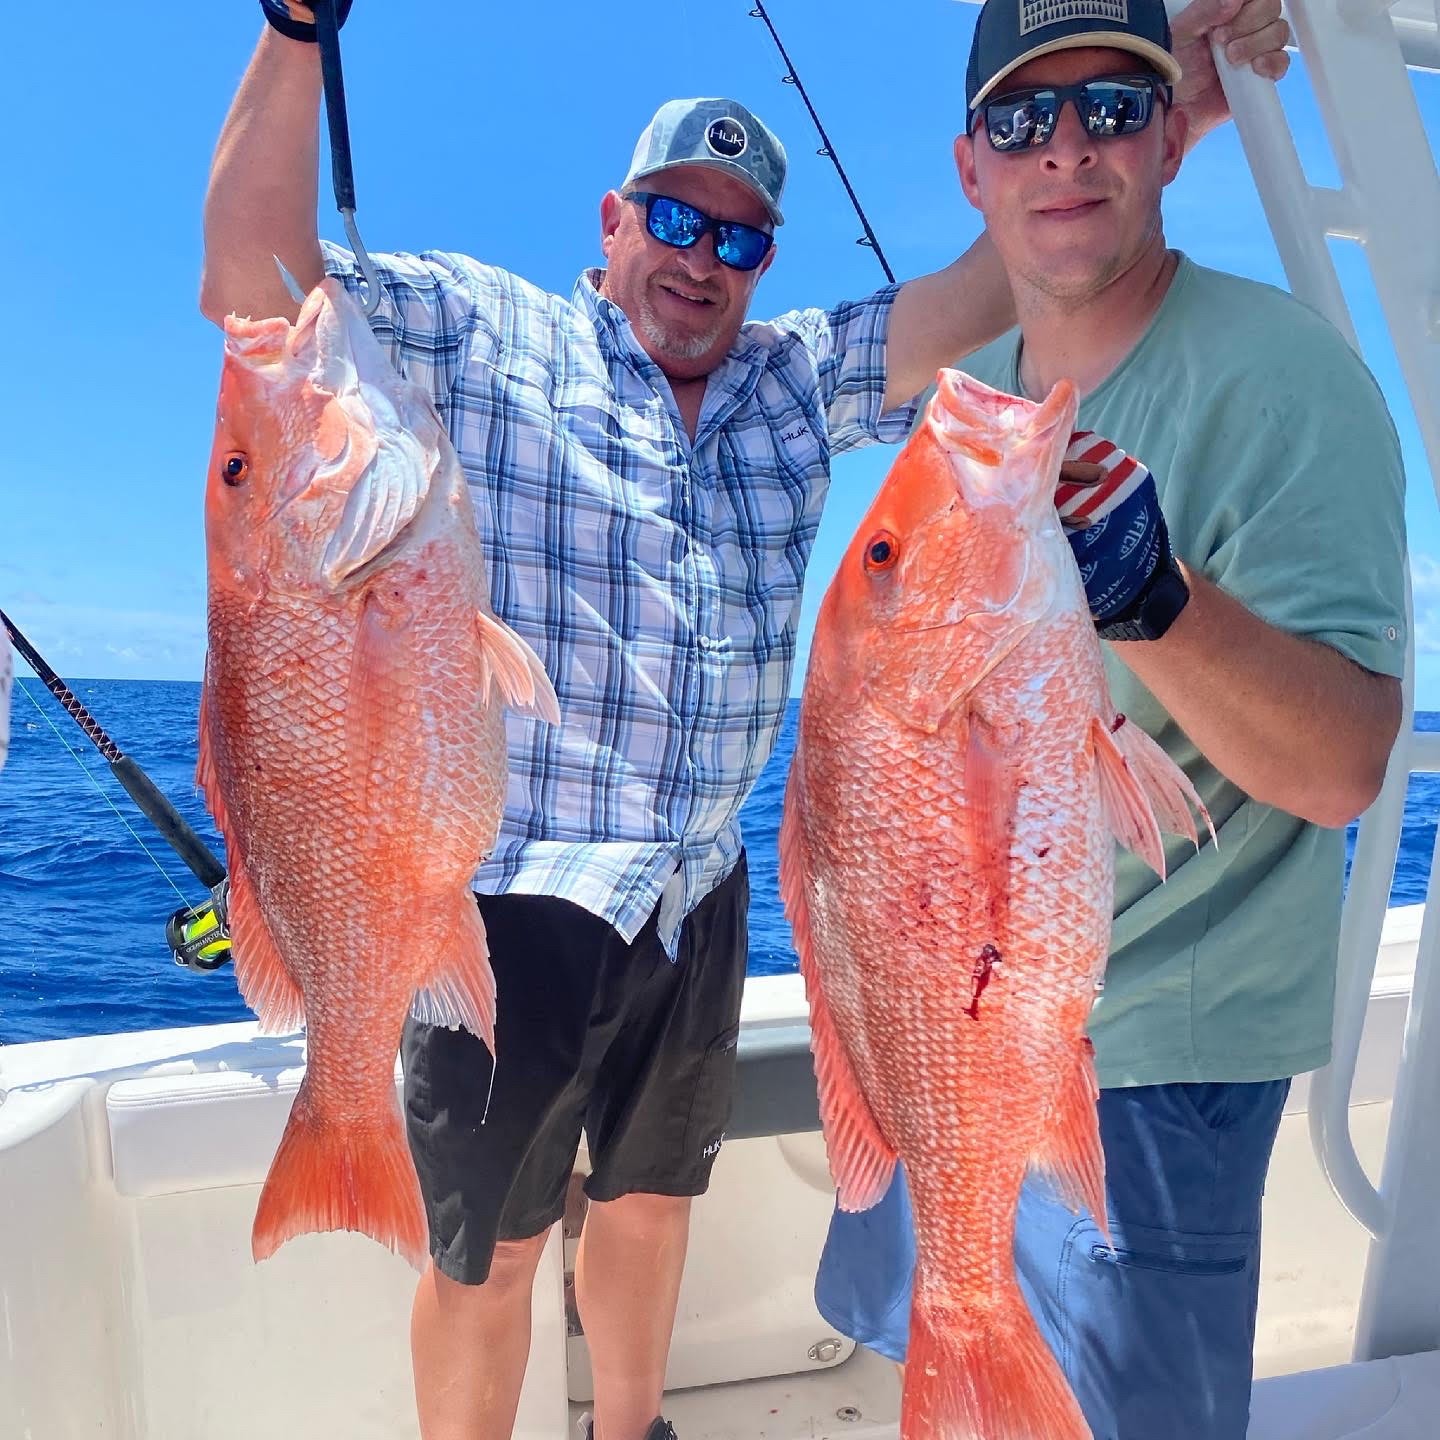 holding their newly caught red snapper